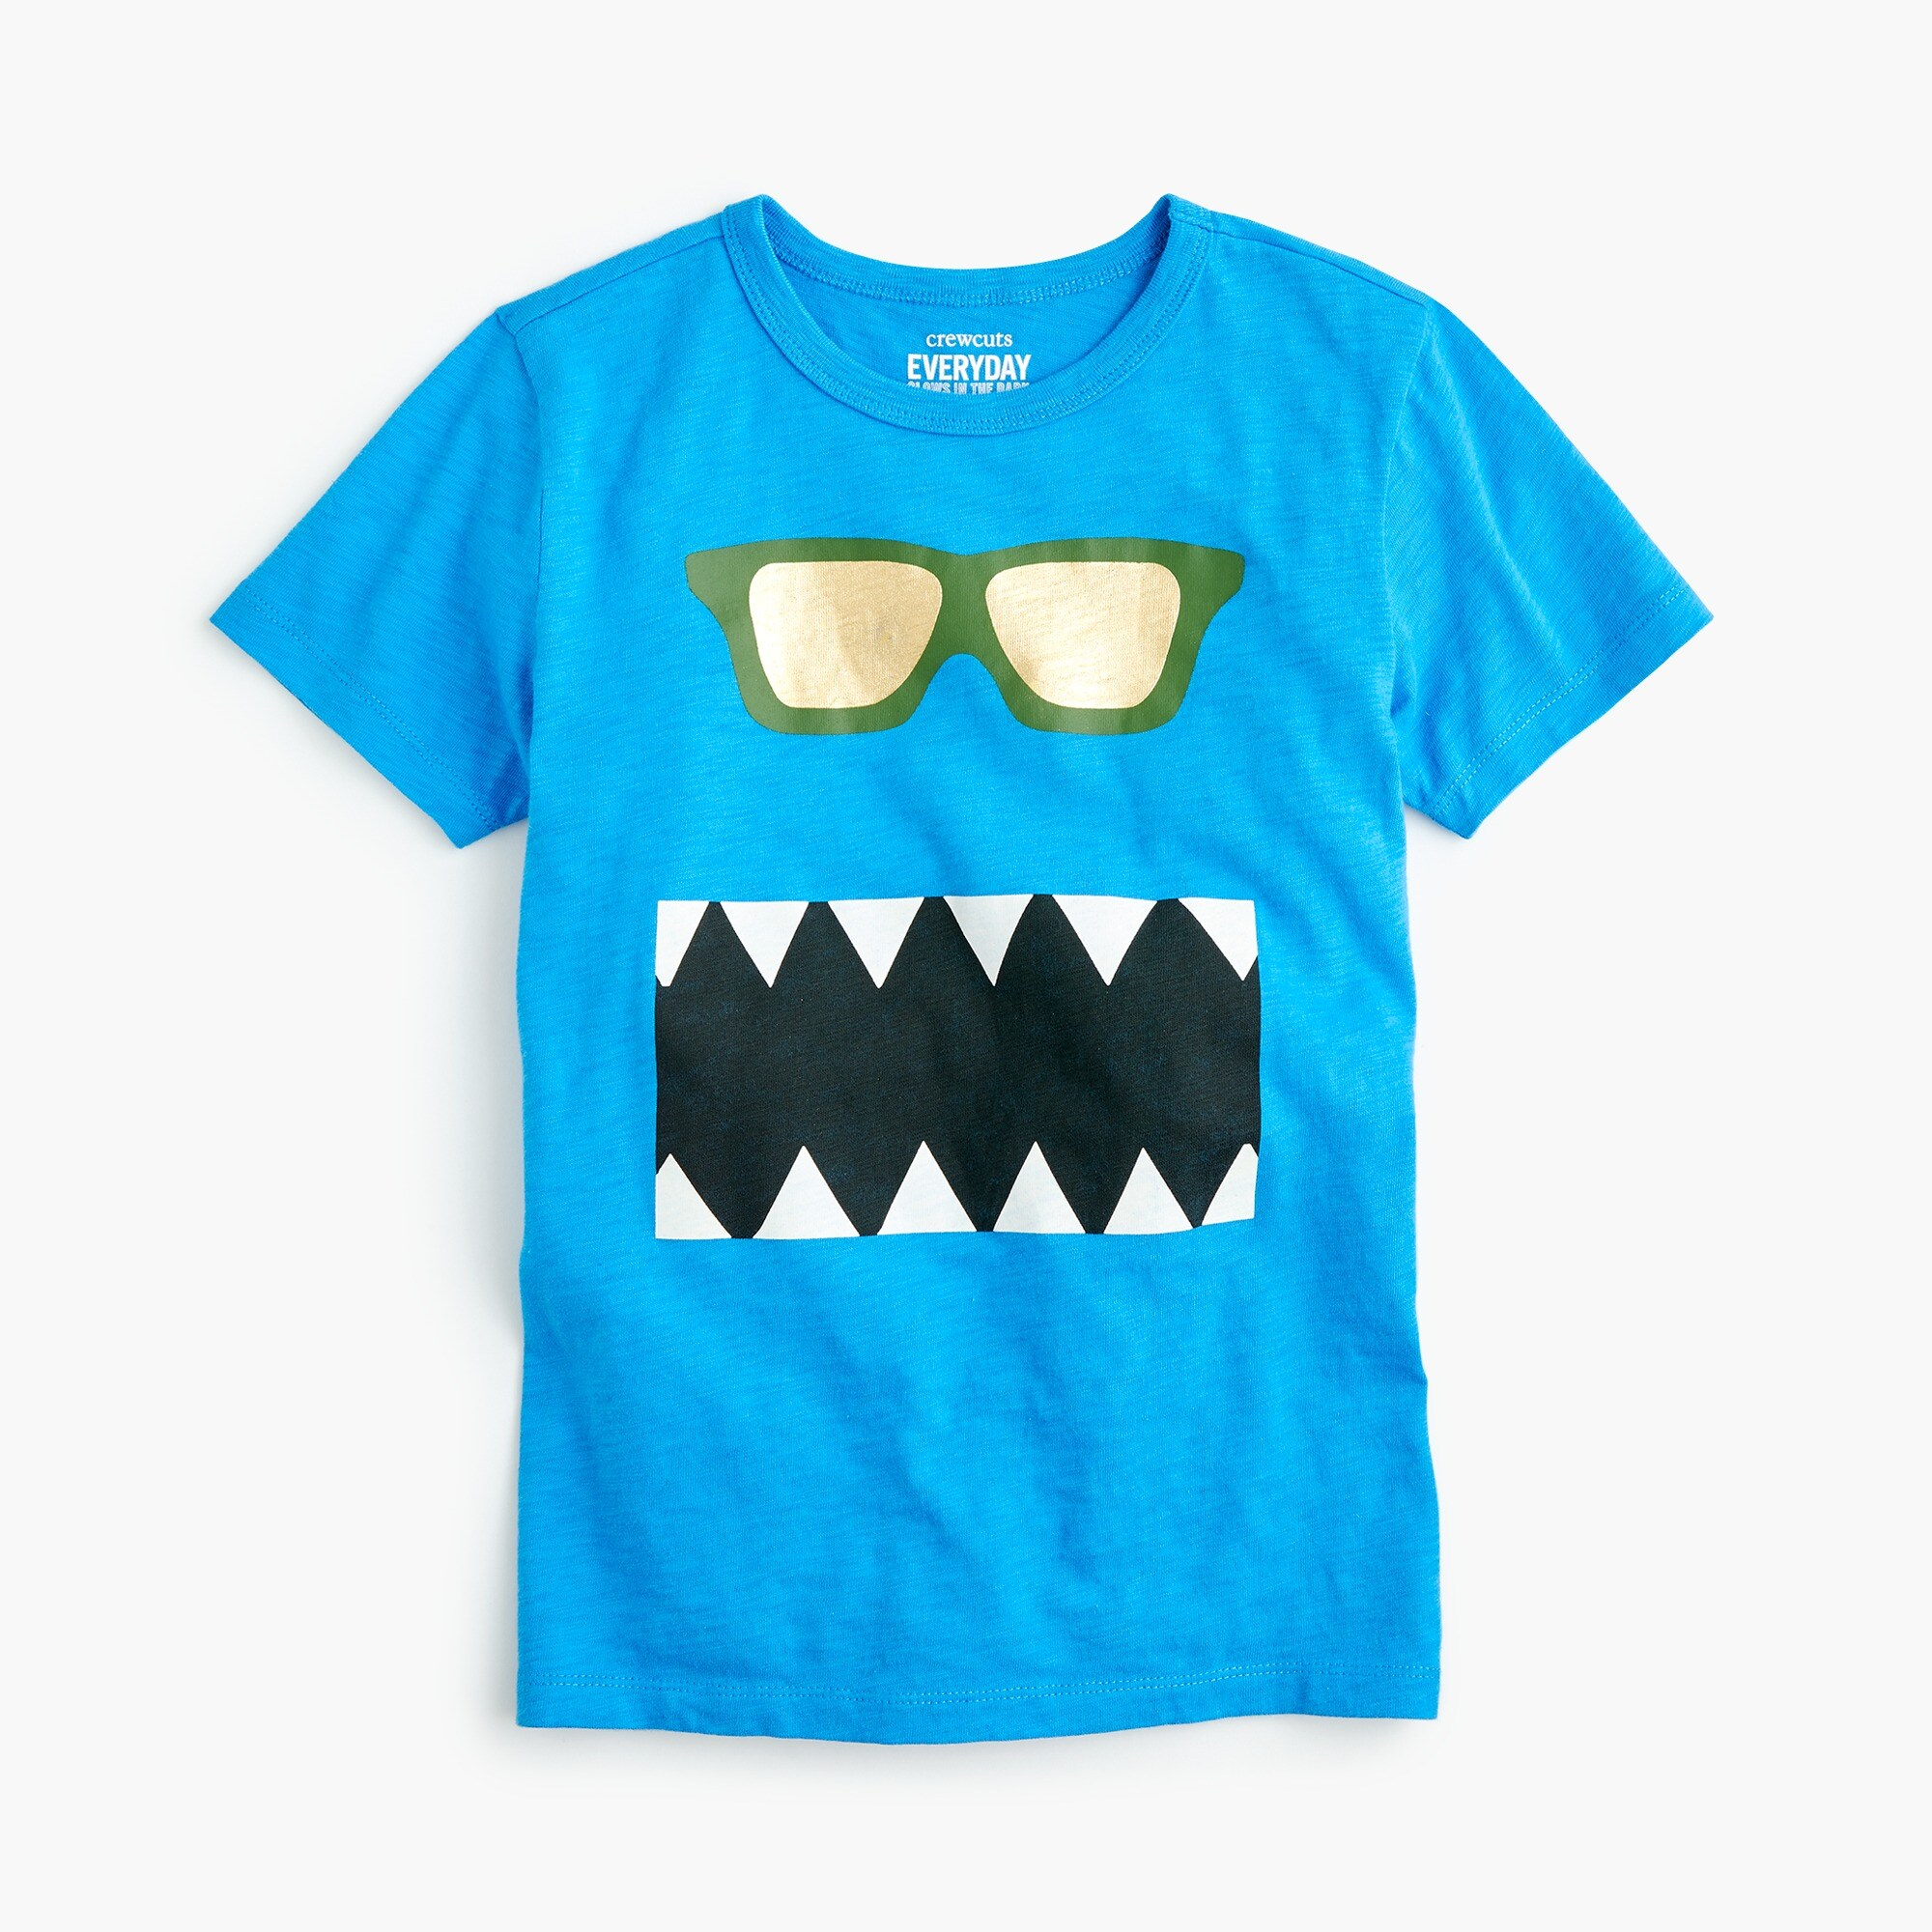 Boys' glow-in-the-dark snaggletooth monster T-shirt boy new arrivals c